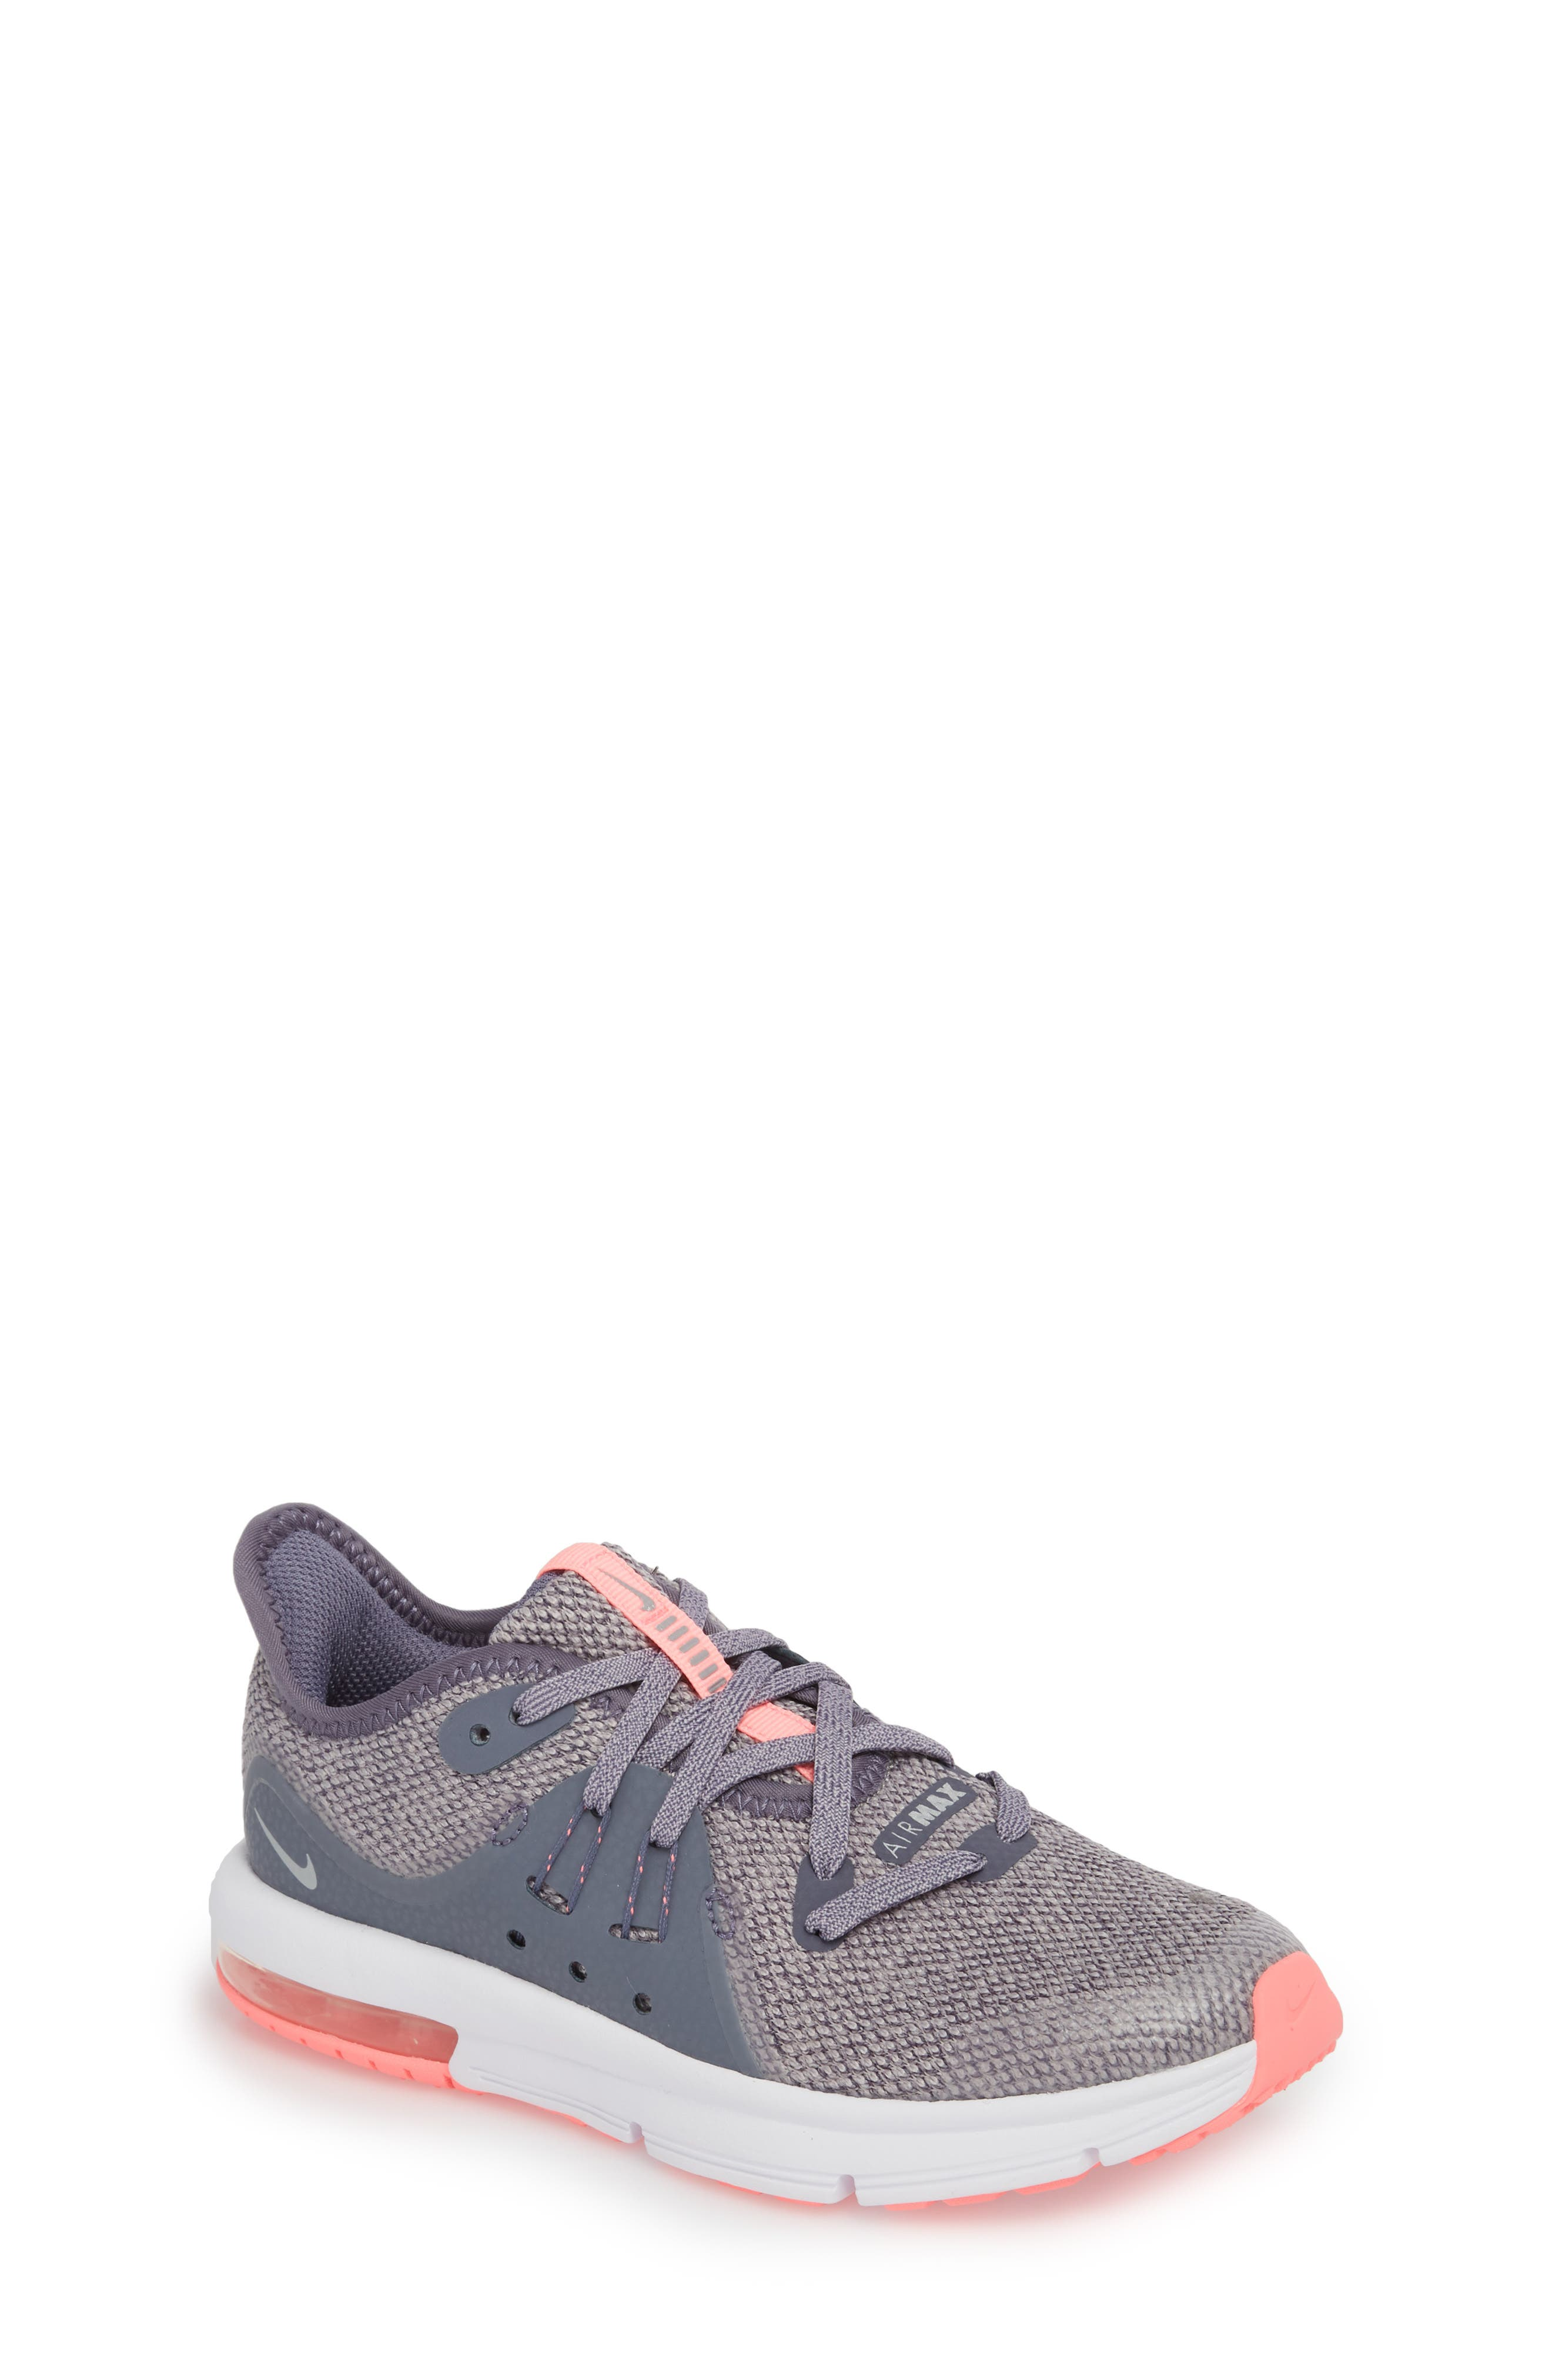 Alternate Image 1 Selected - Nike Air Max Sequent 3 GS Running Shoe (Toddler, Little Kid & Big Kid)